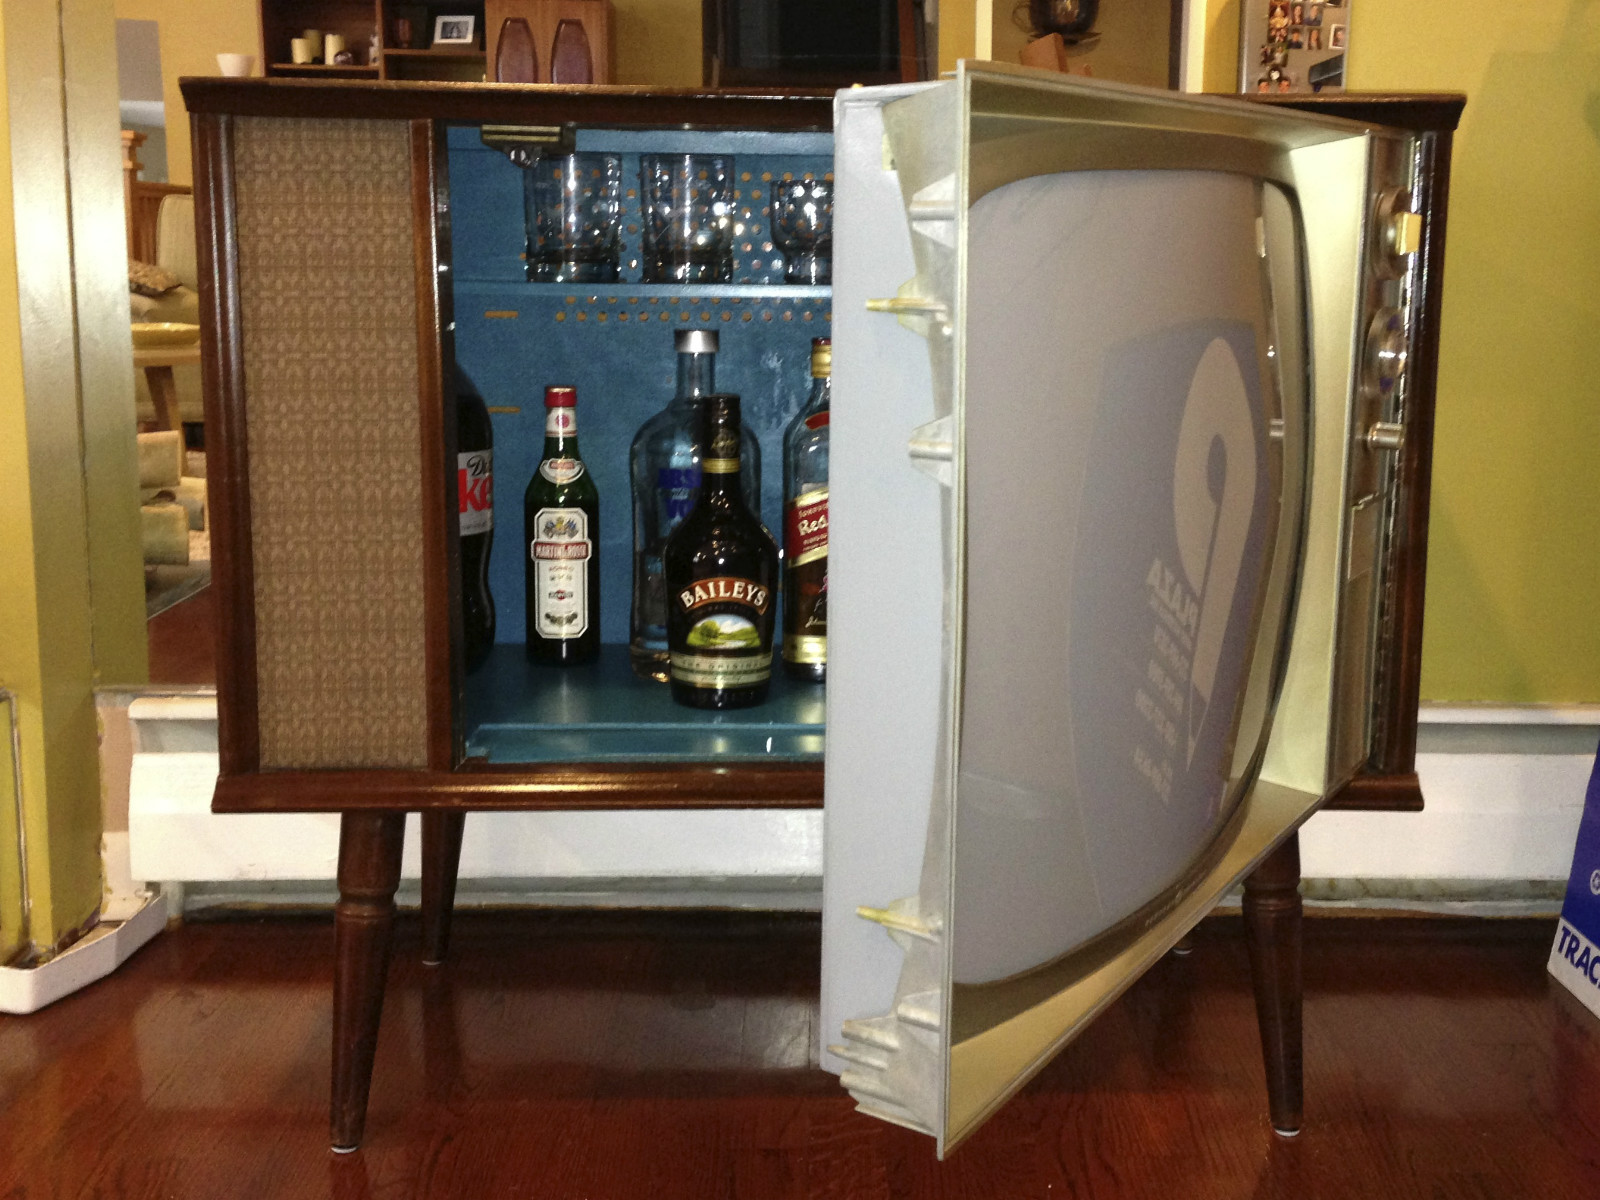 Vintage TV Hidden Cocktail Bar Liquor Cabinet